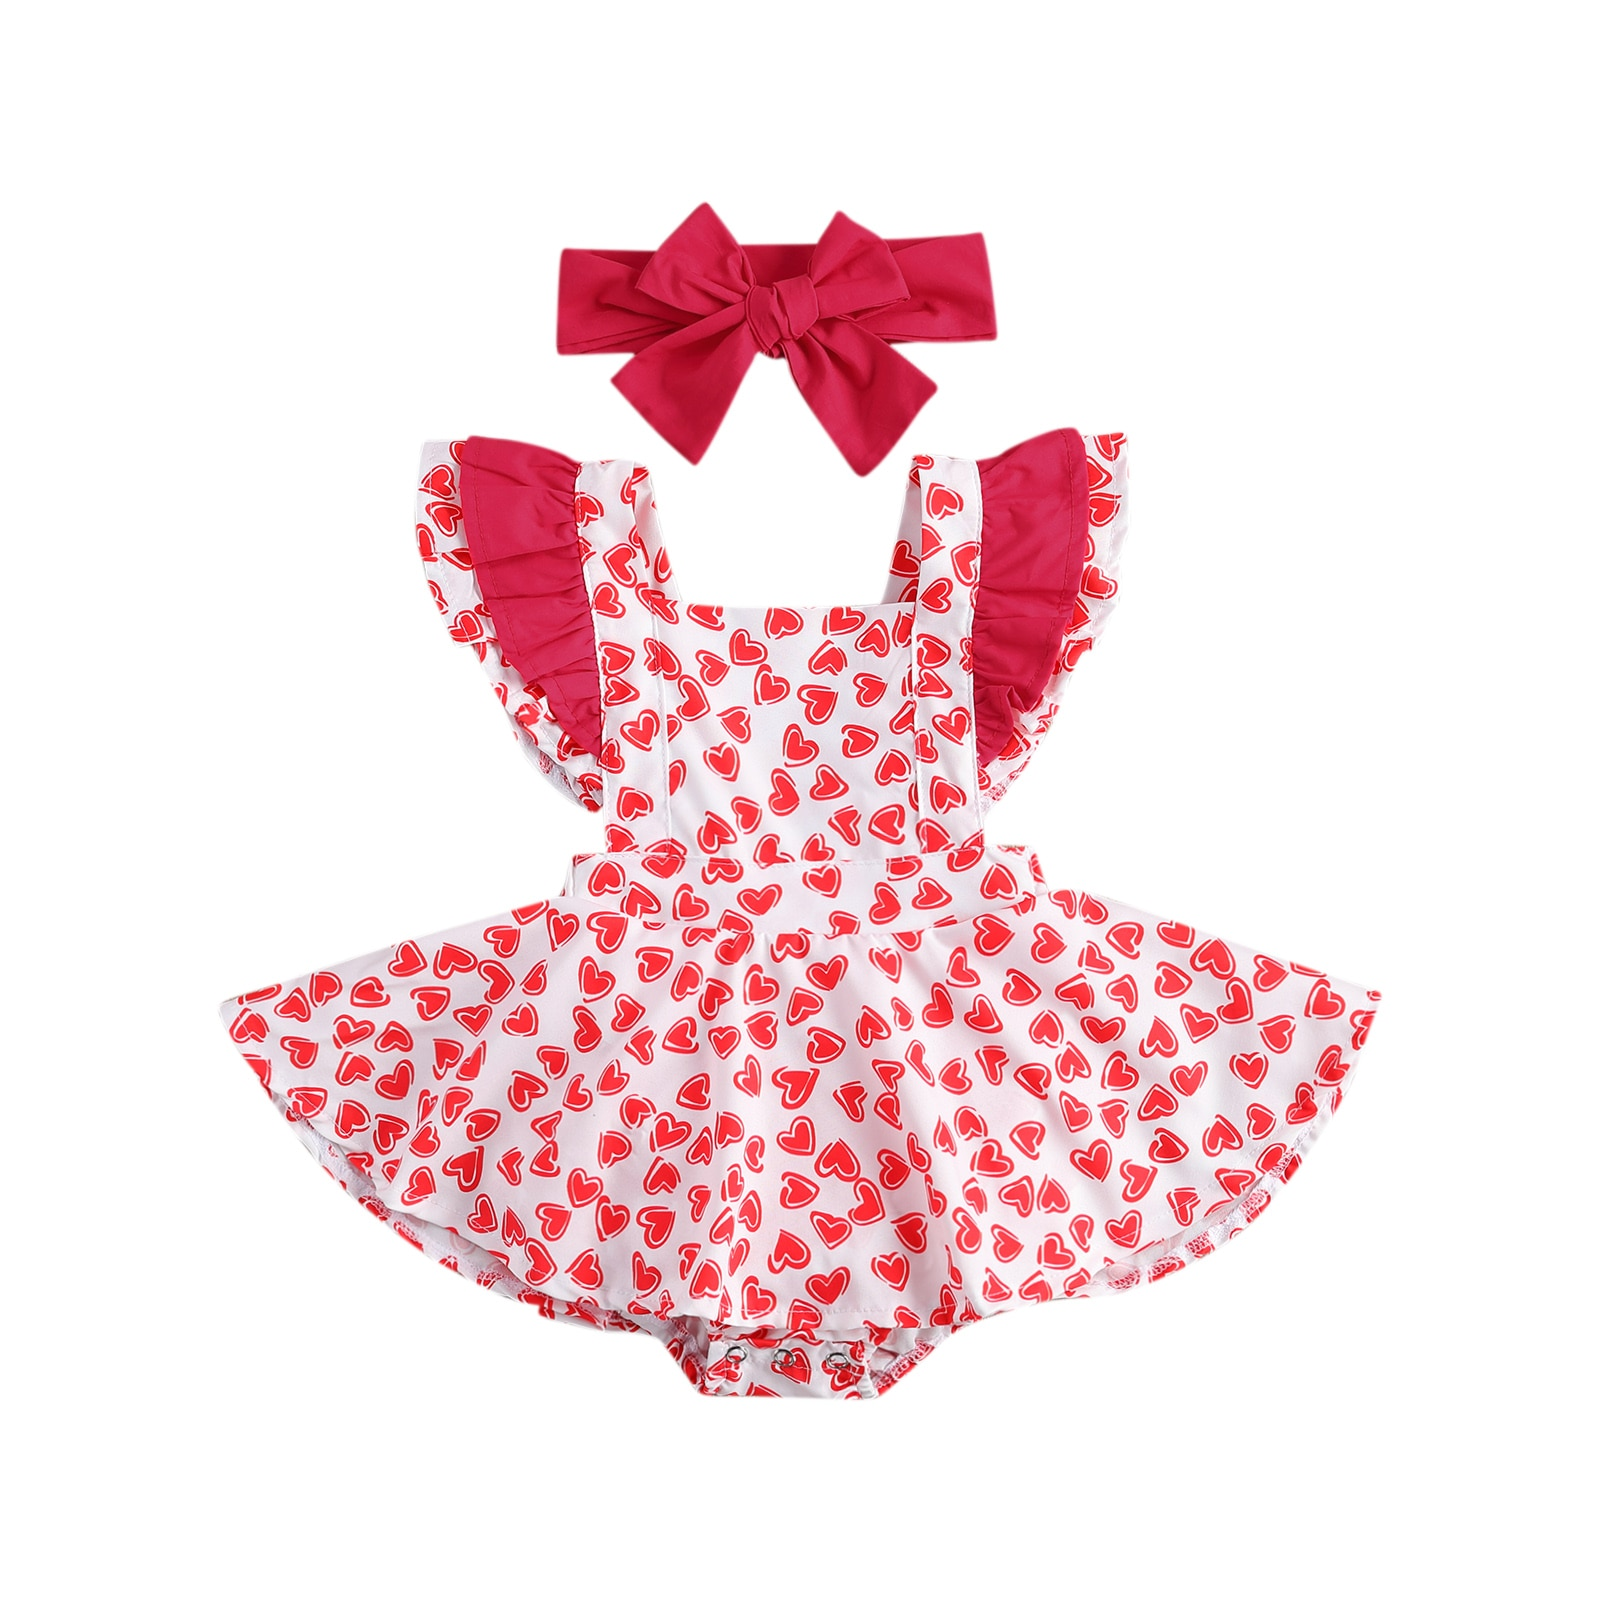 Toddler Baby Girls 2021 Valentine's Day Striped Print Tulle Dress+Hairband Outfit Princess Party Dress Infant Children Kids Suit girls rainbow print striped dress